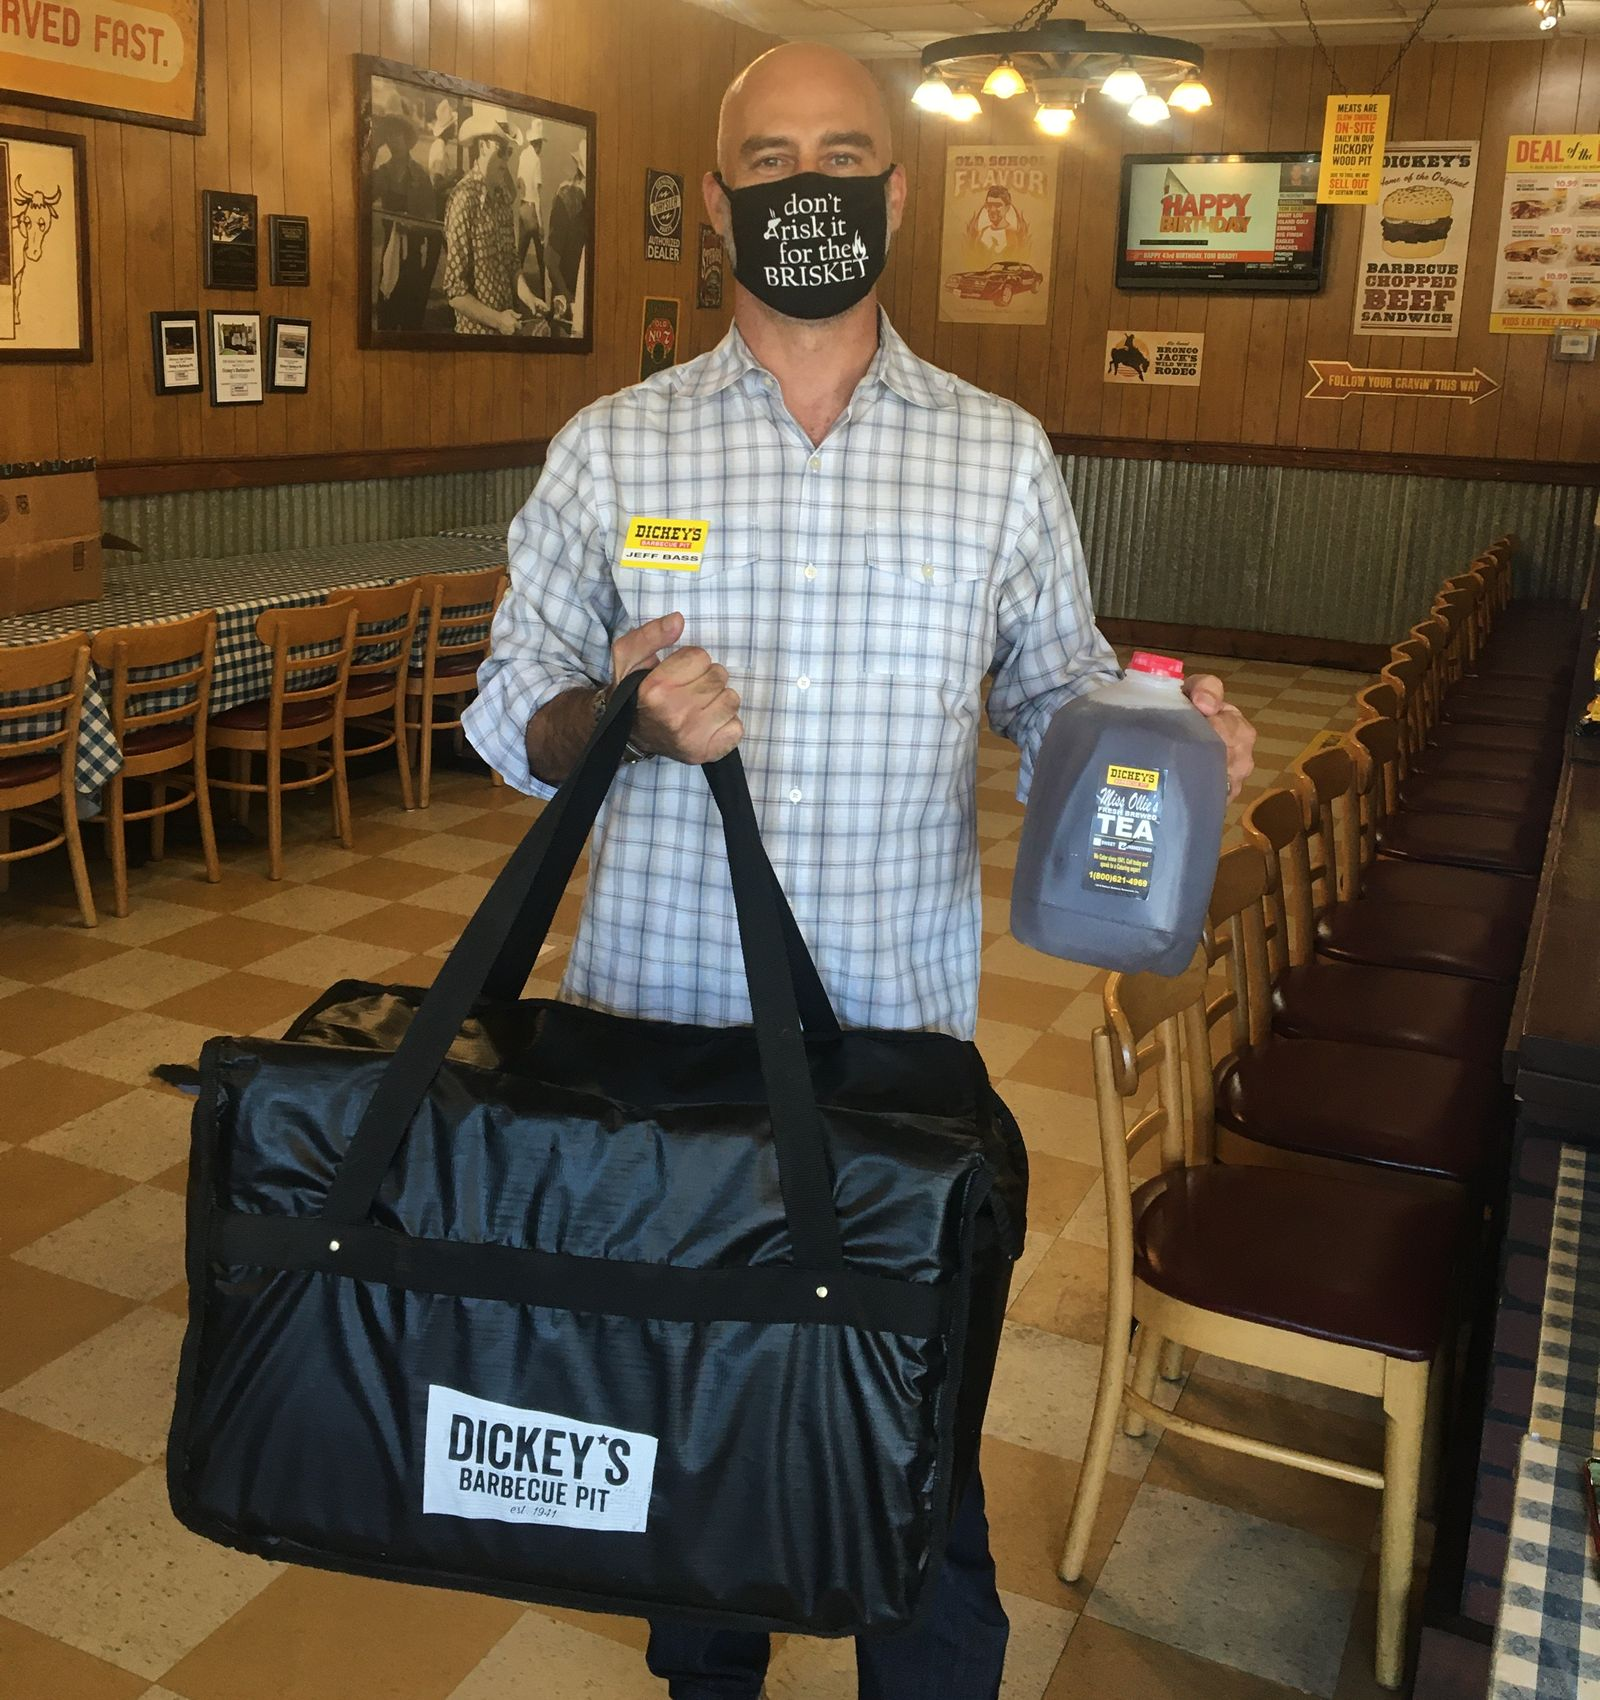 Dickey's Barbecue Pit Owner Operator Jeff Bass